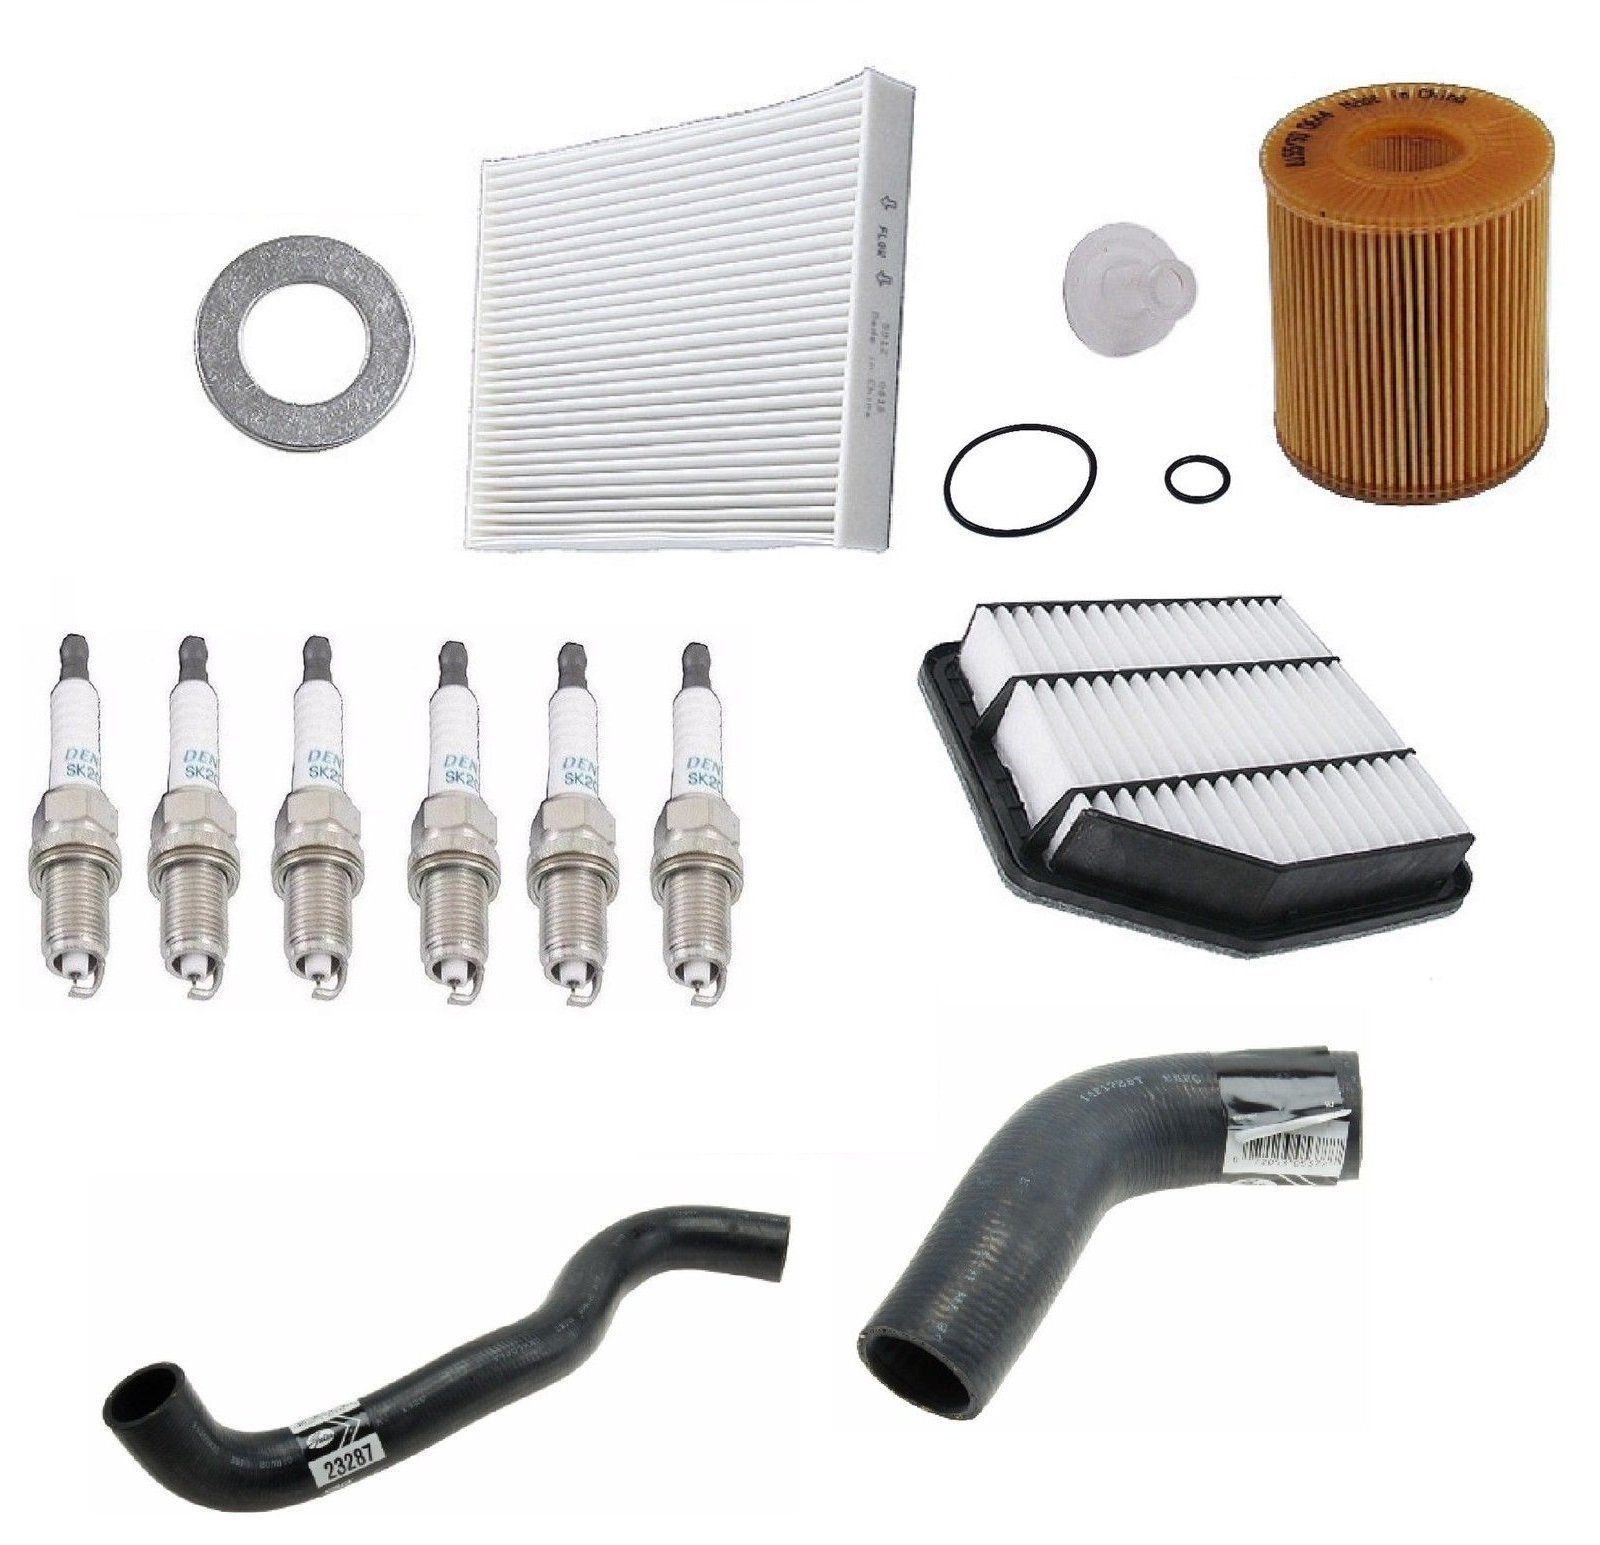 Tune Up Kit Oil Plugs Filters Hoses for Lexus IS250 06-10 Lexus IS350 10-12 by Stone / Original Performance / Gates / Denso